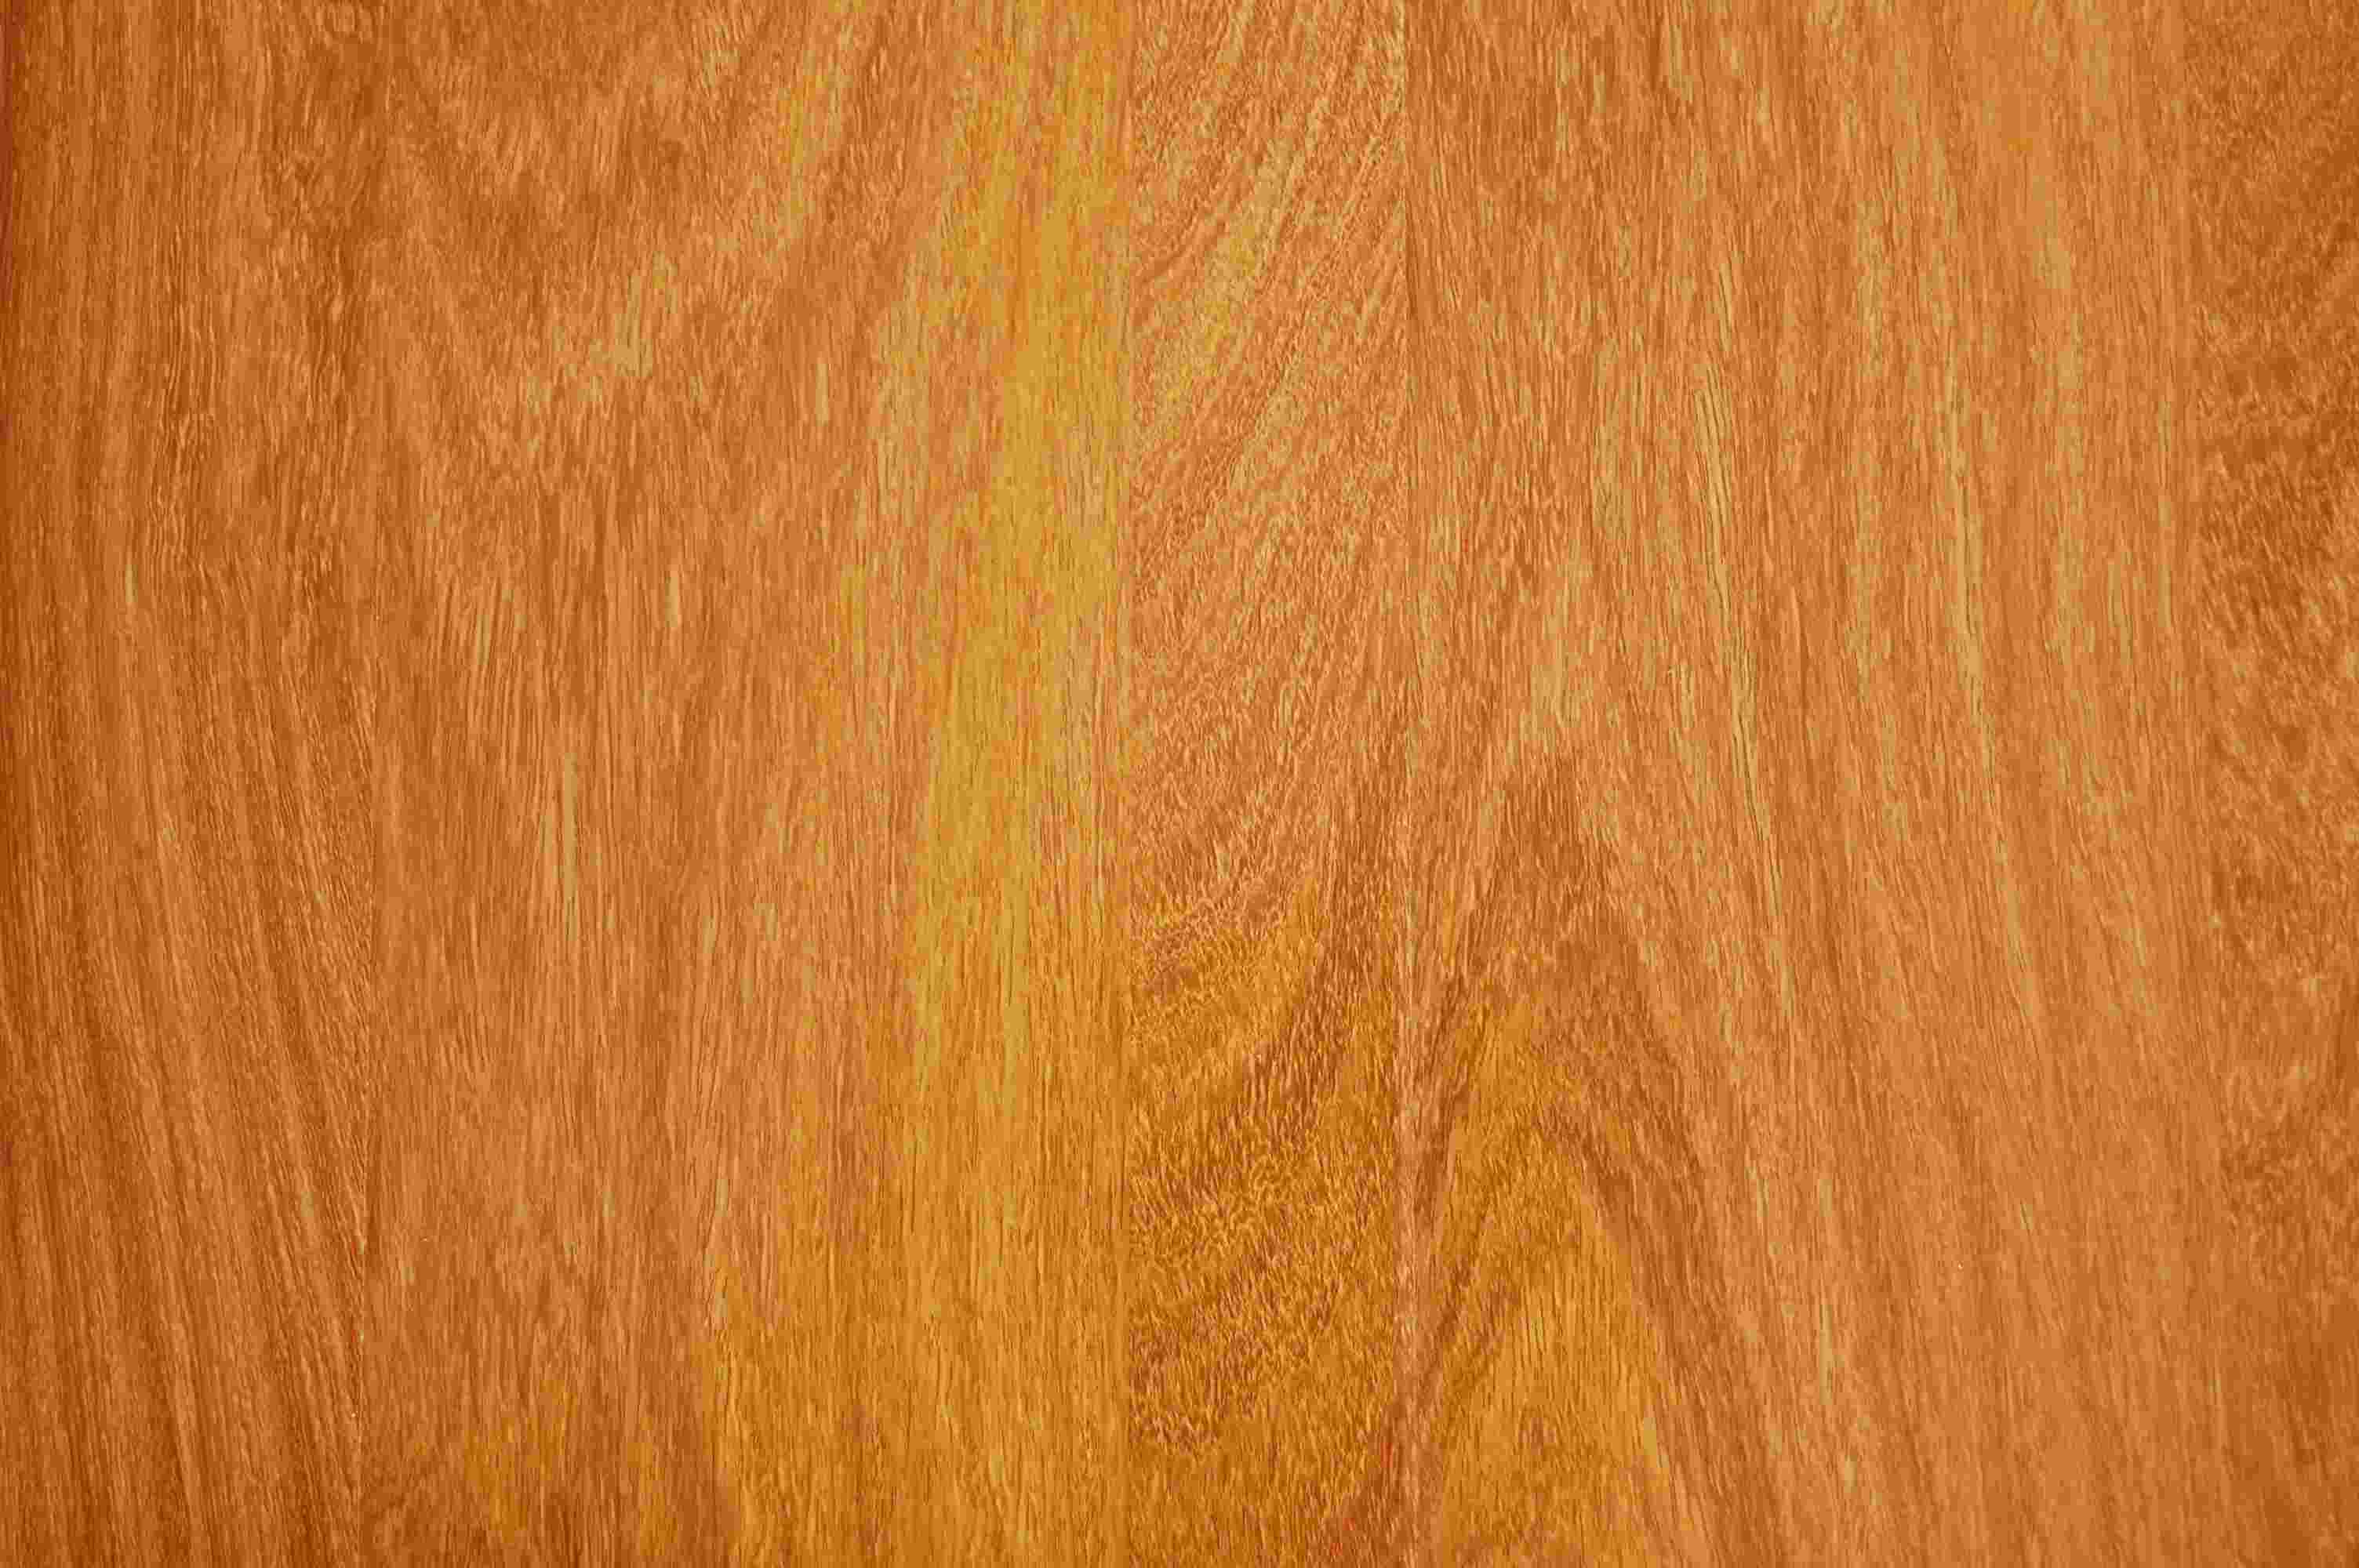 Wood image 400 for Hardwood laminate